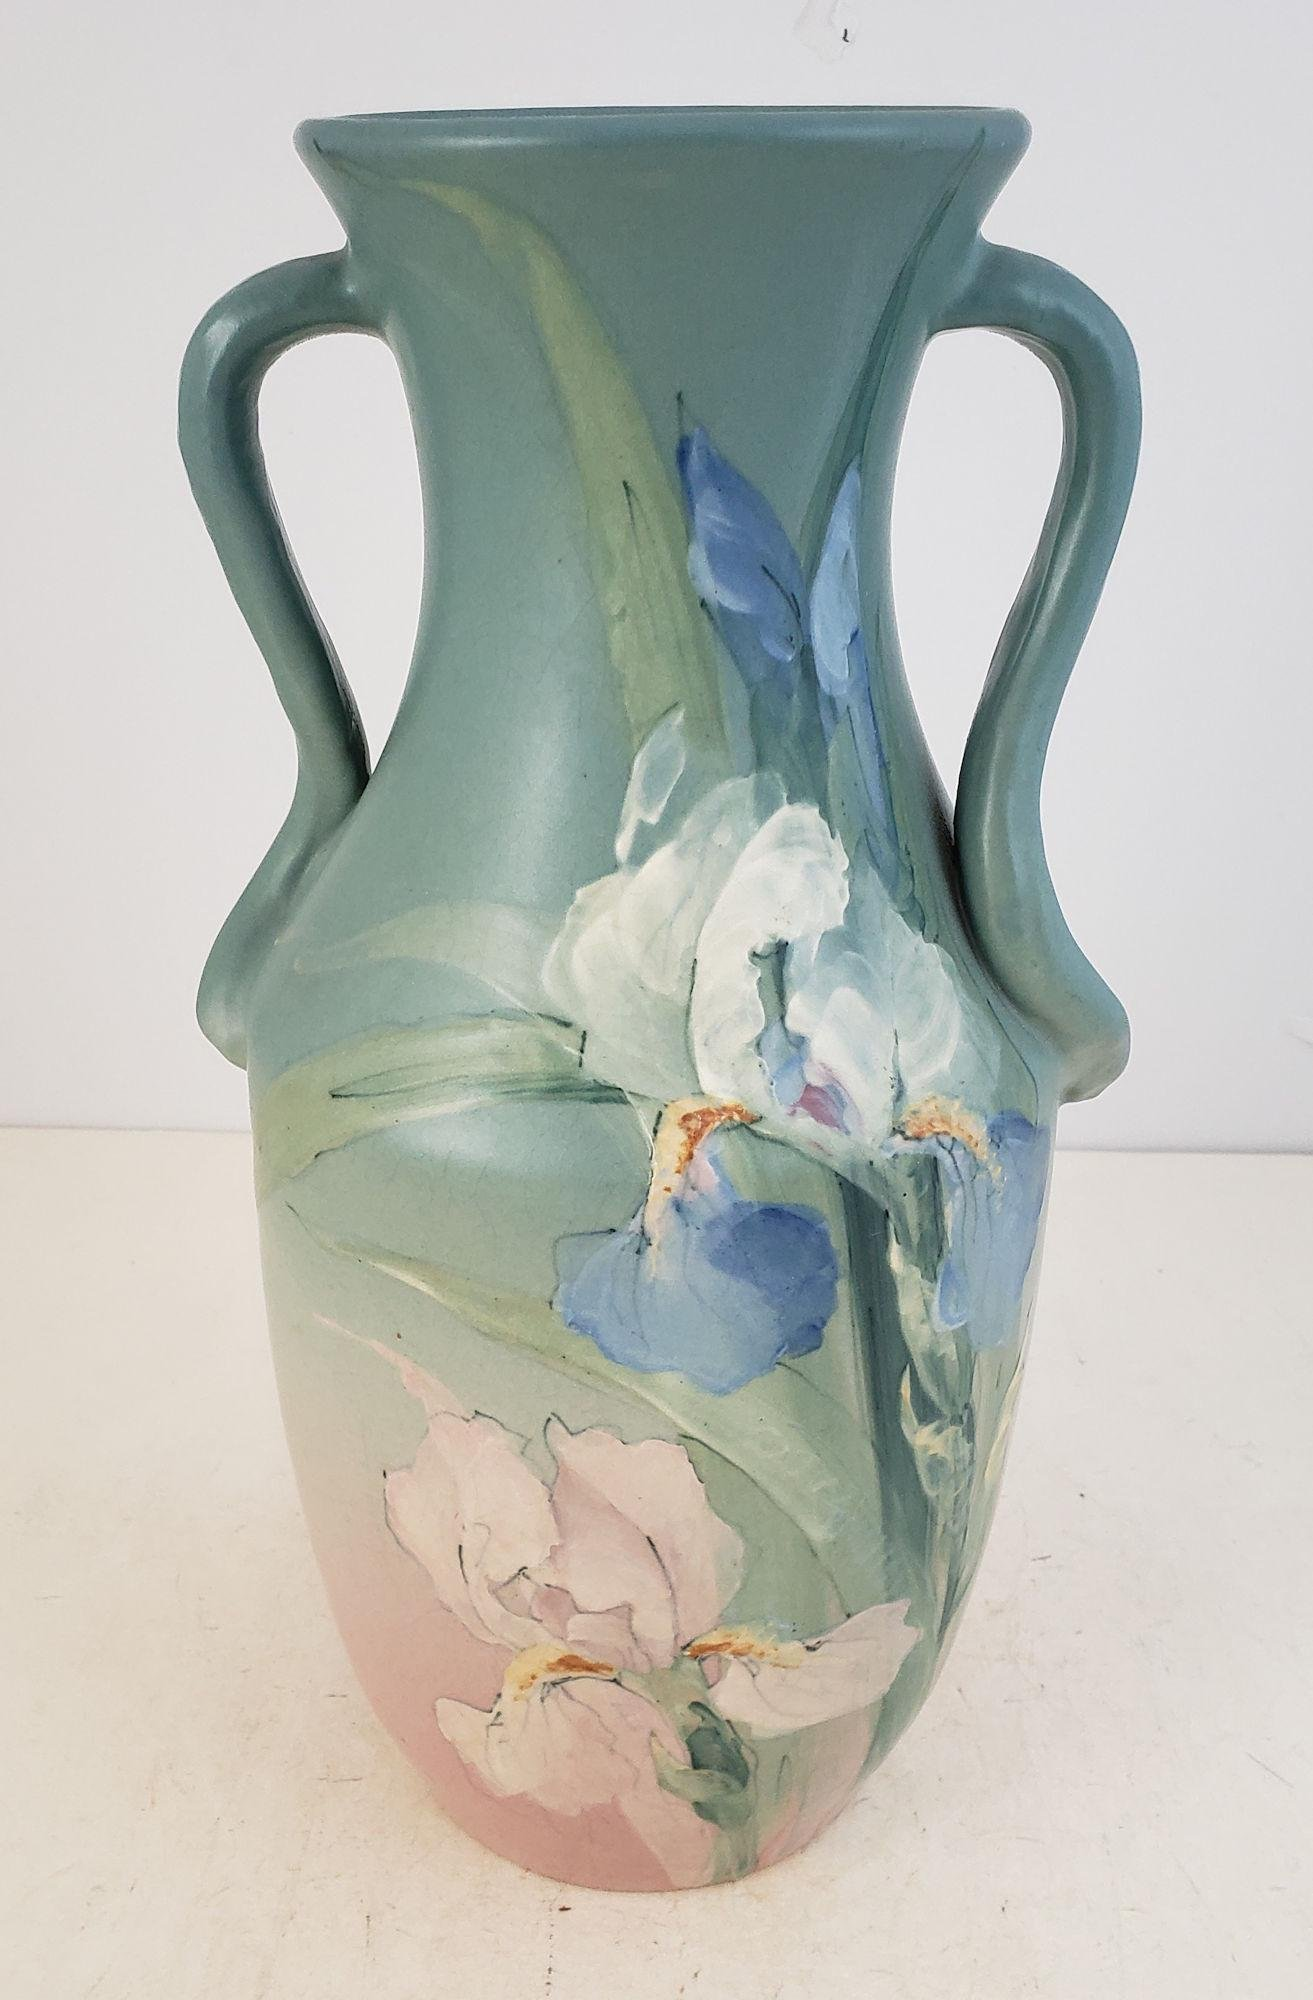 WELLER POTTERY HUDSON? TWO HANDLED VASE WITH IRIS